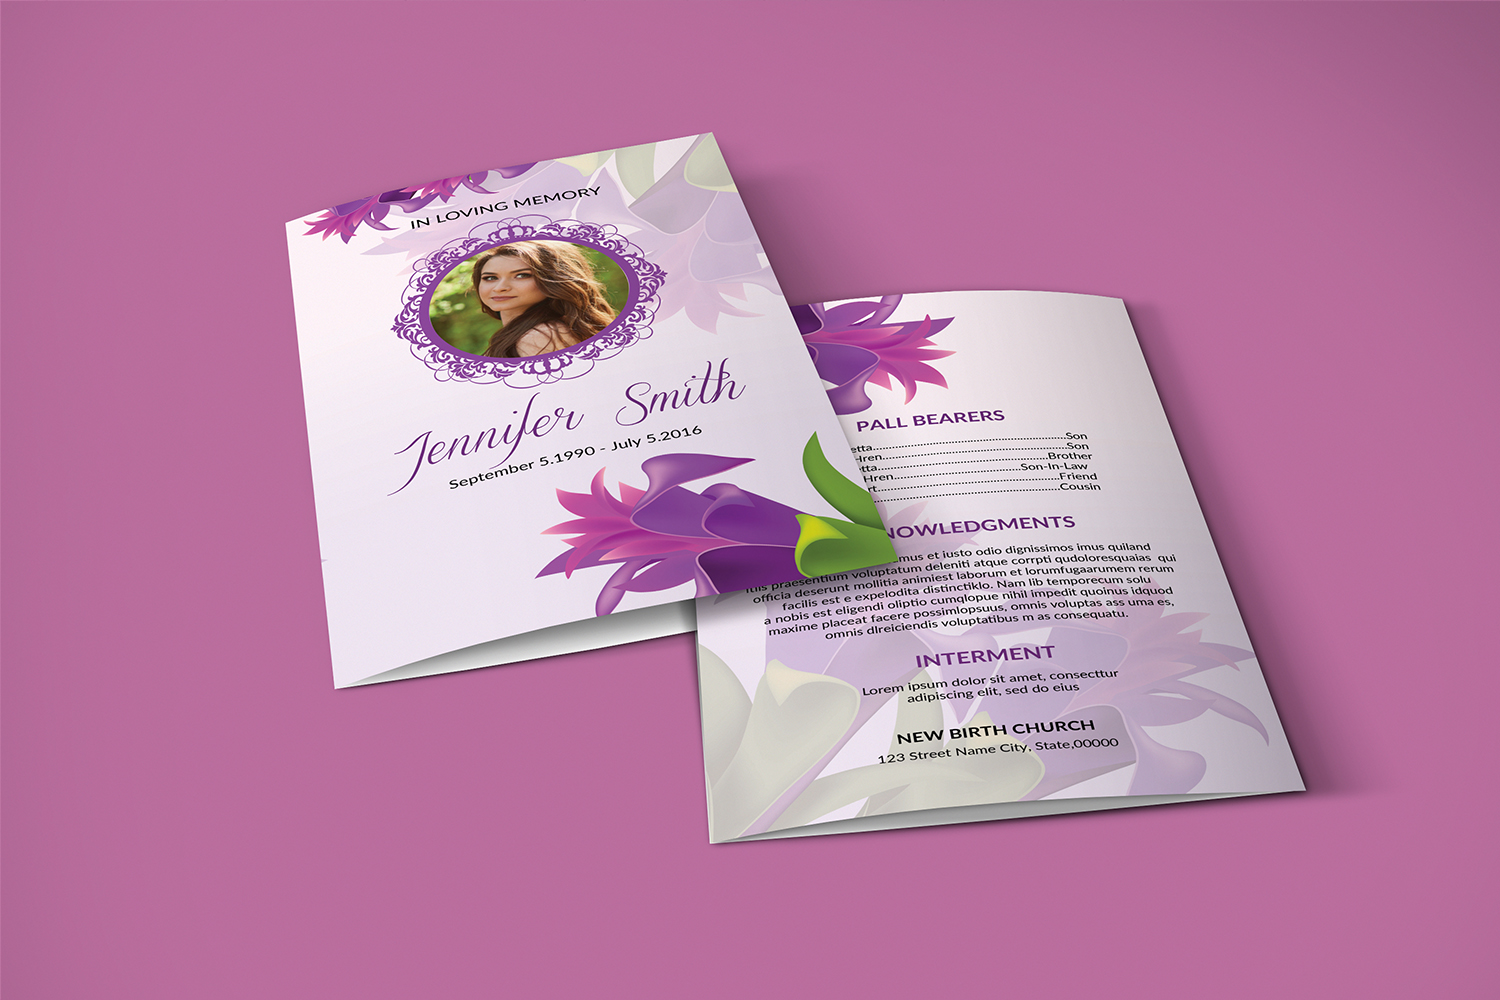 Floral Funeral Program Template example image 5